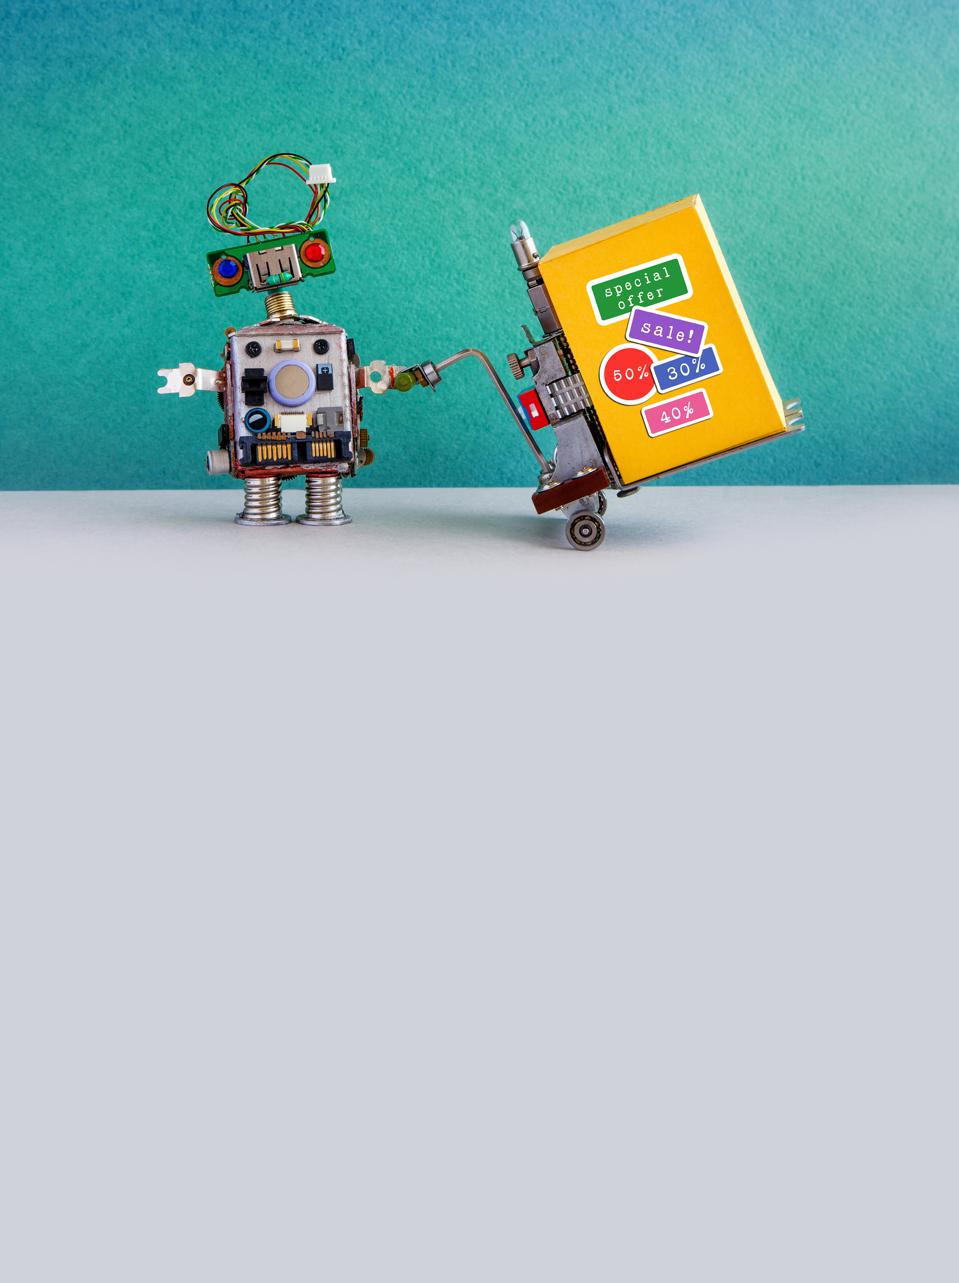 Special sale promotion poster. Comical robot moving shopping cart box with discount advertising stickers. Green gray background, copy space